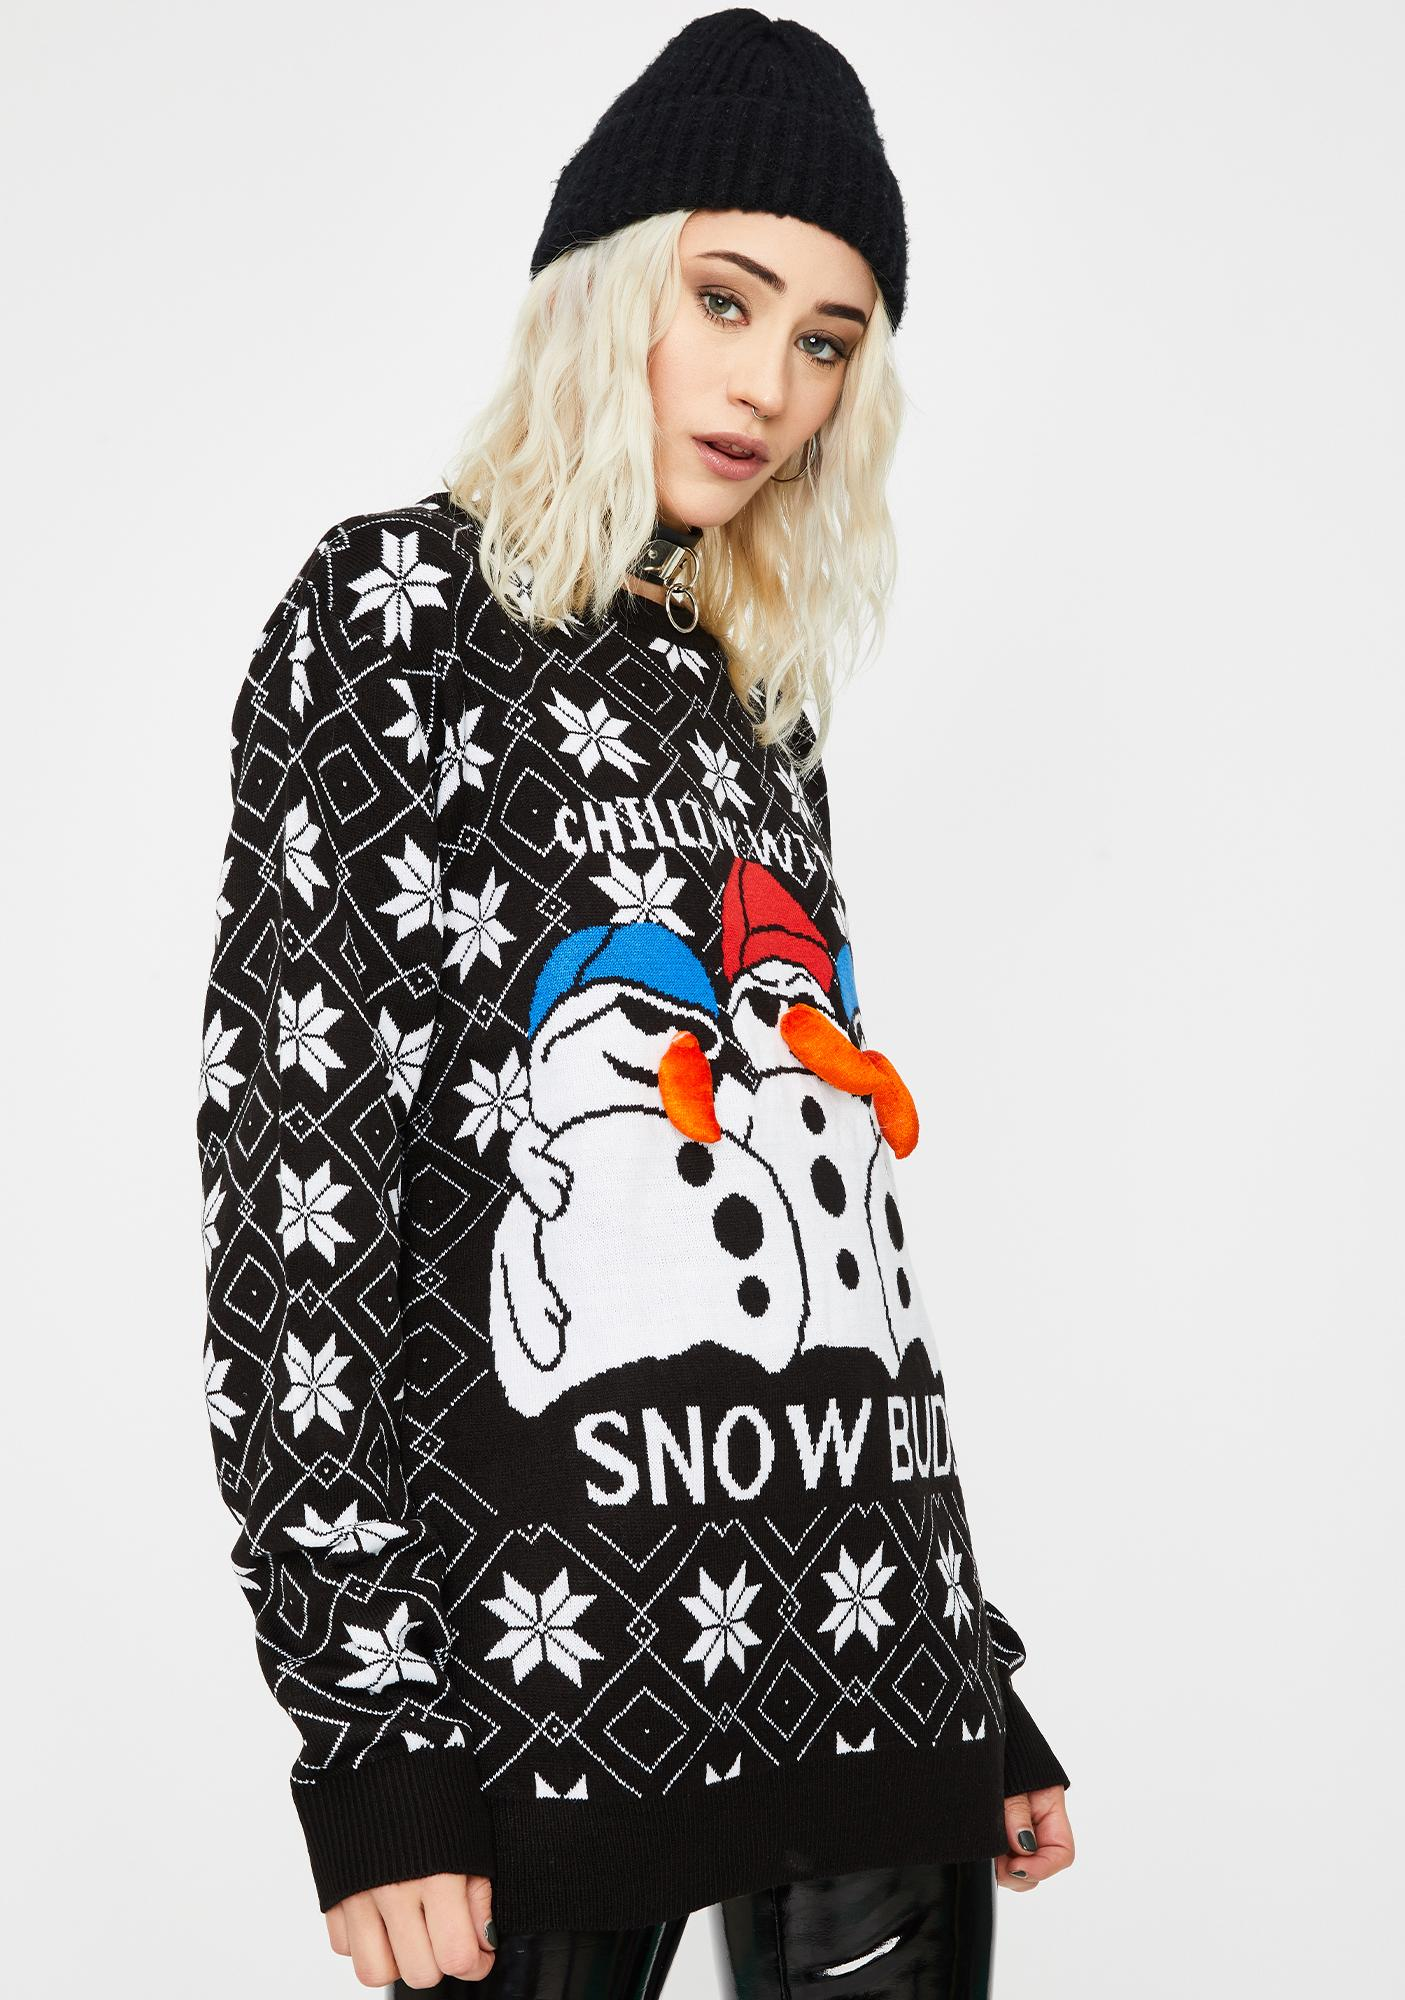 Snow Buds Holiday Sweater